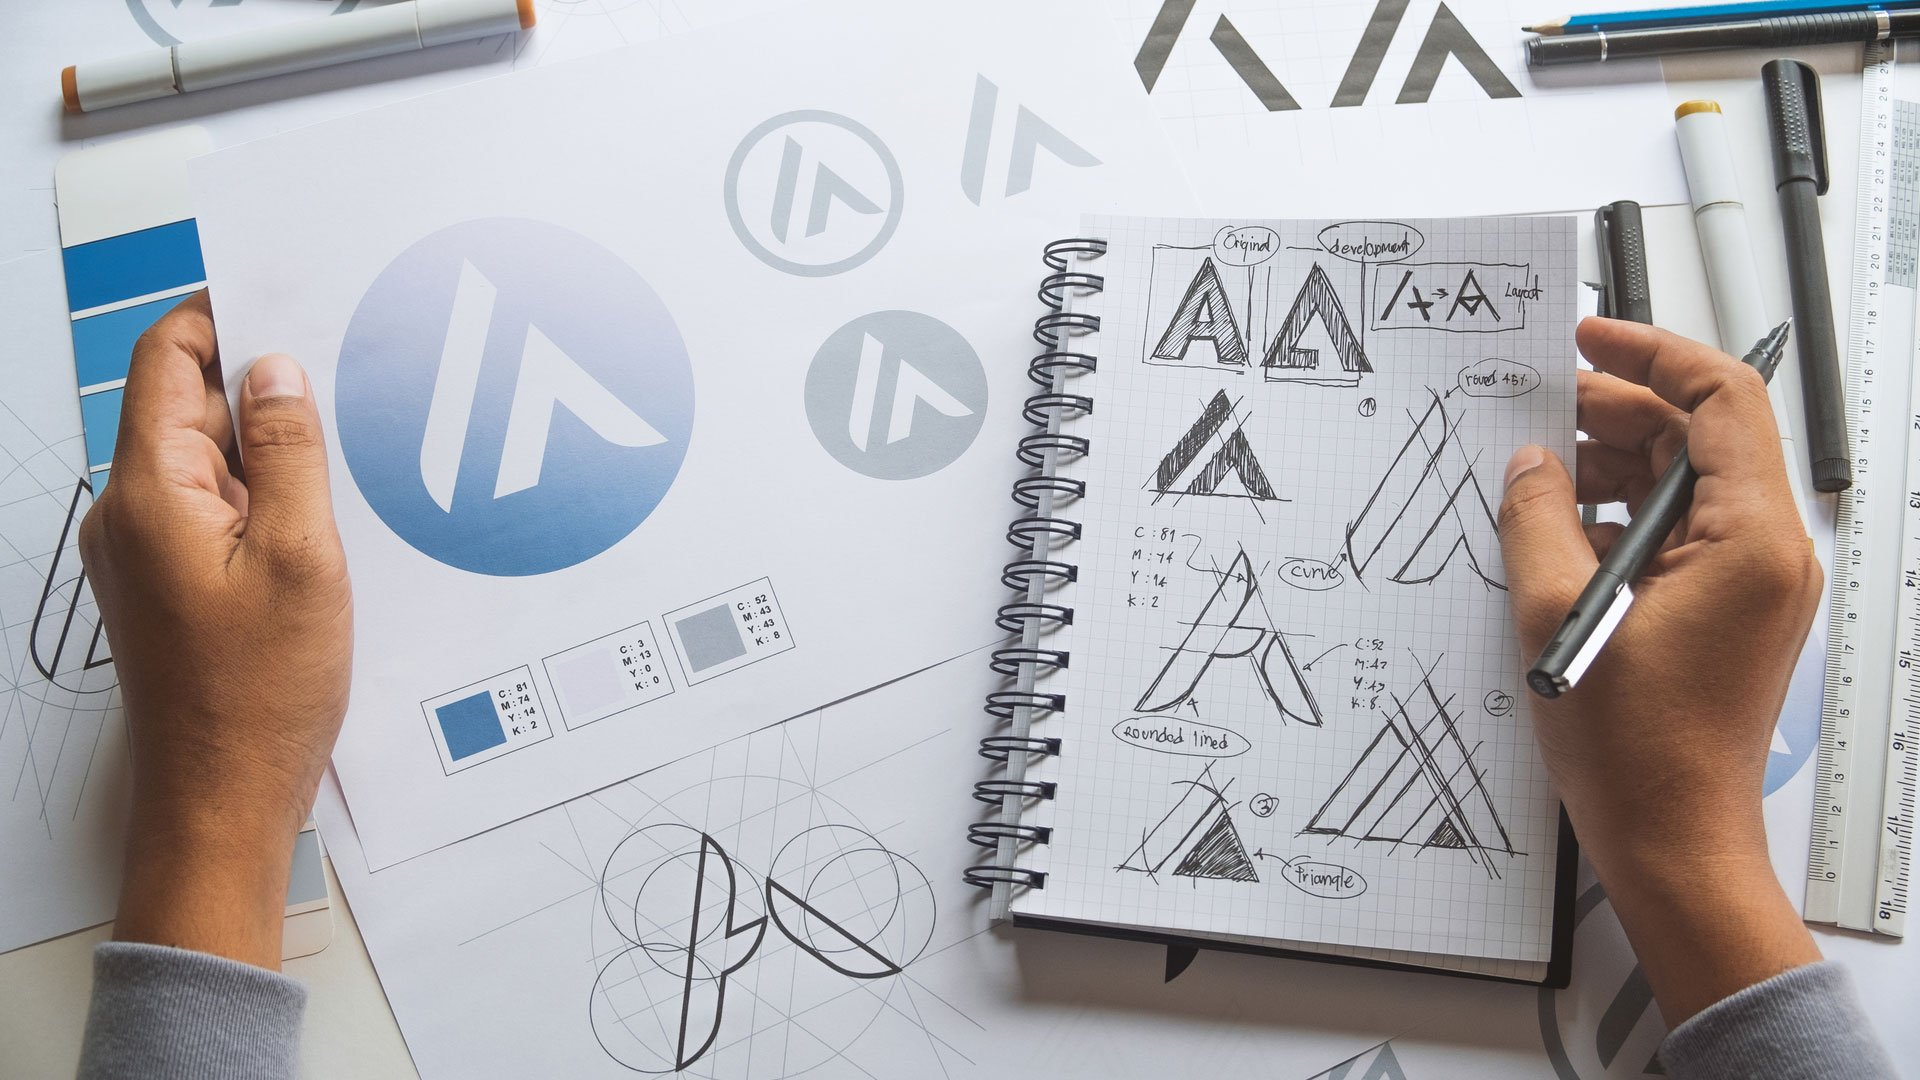 What is brand identity and how to get it designed and developed?